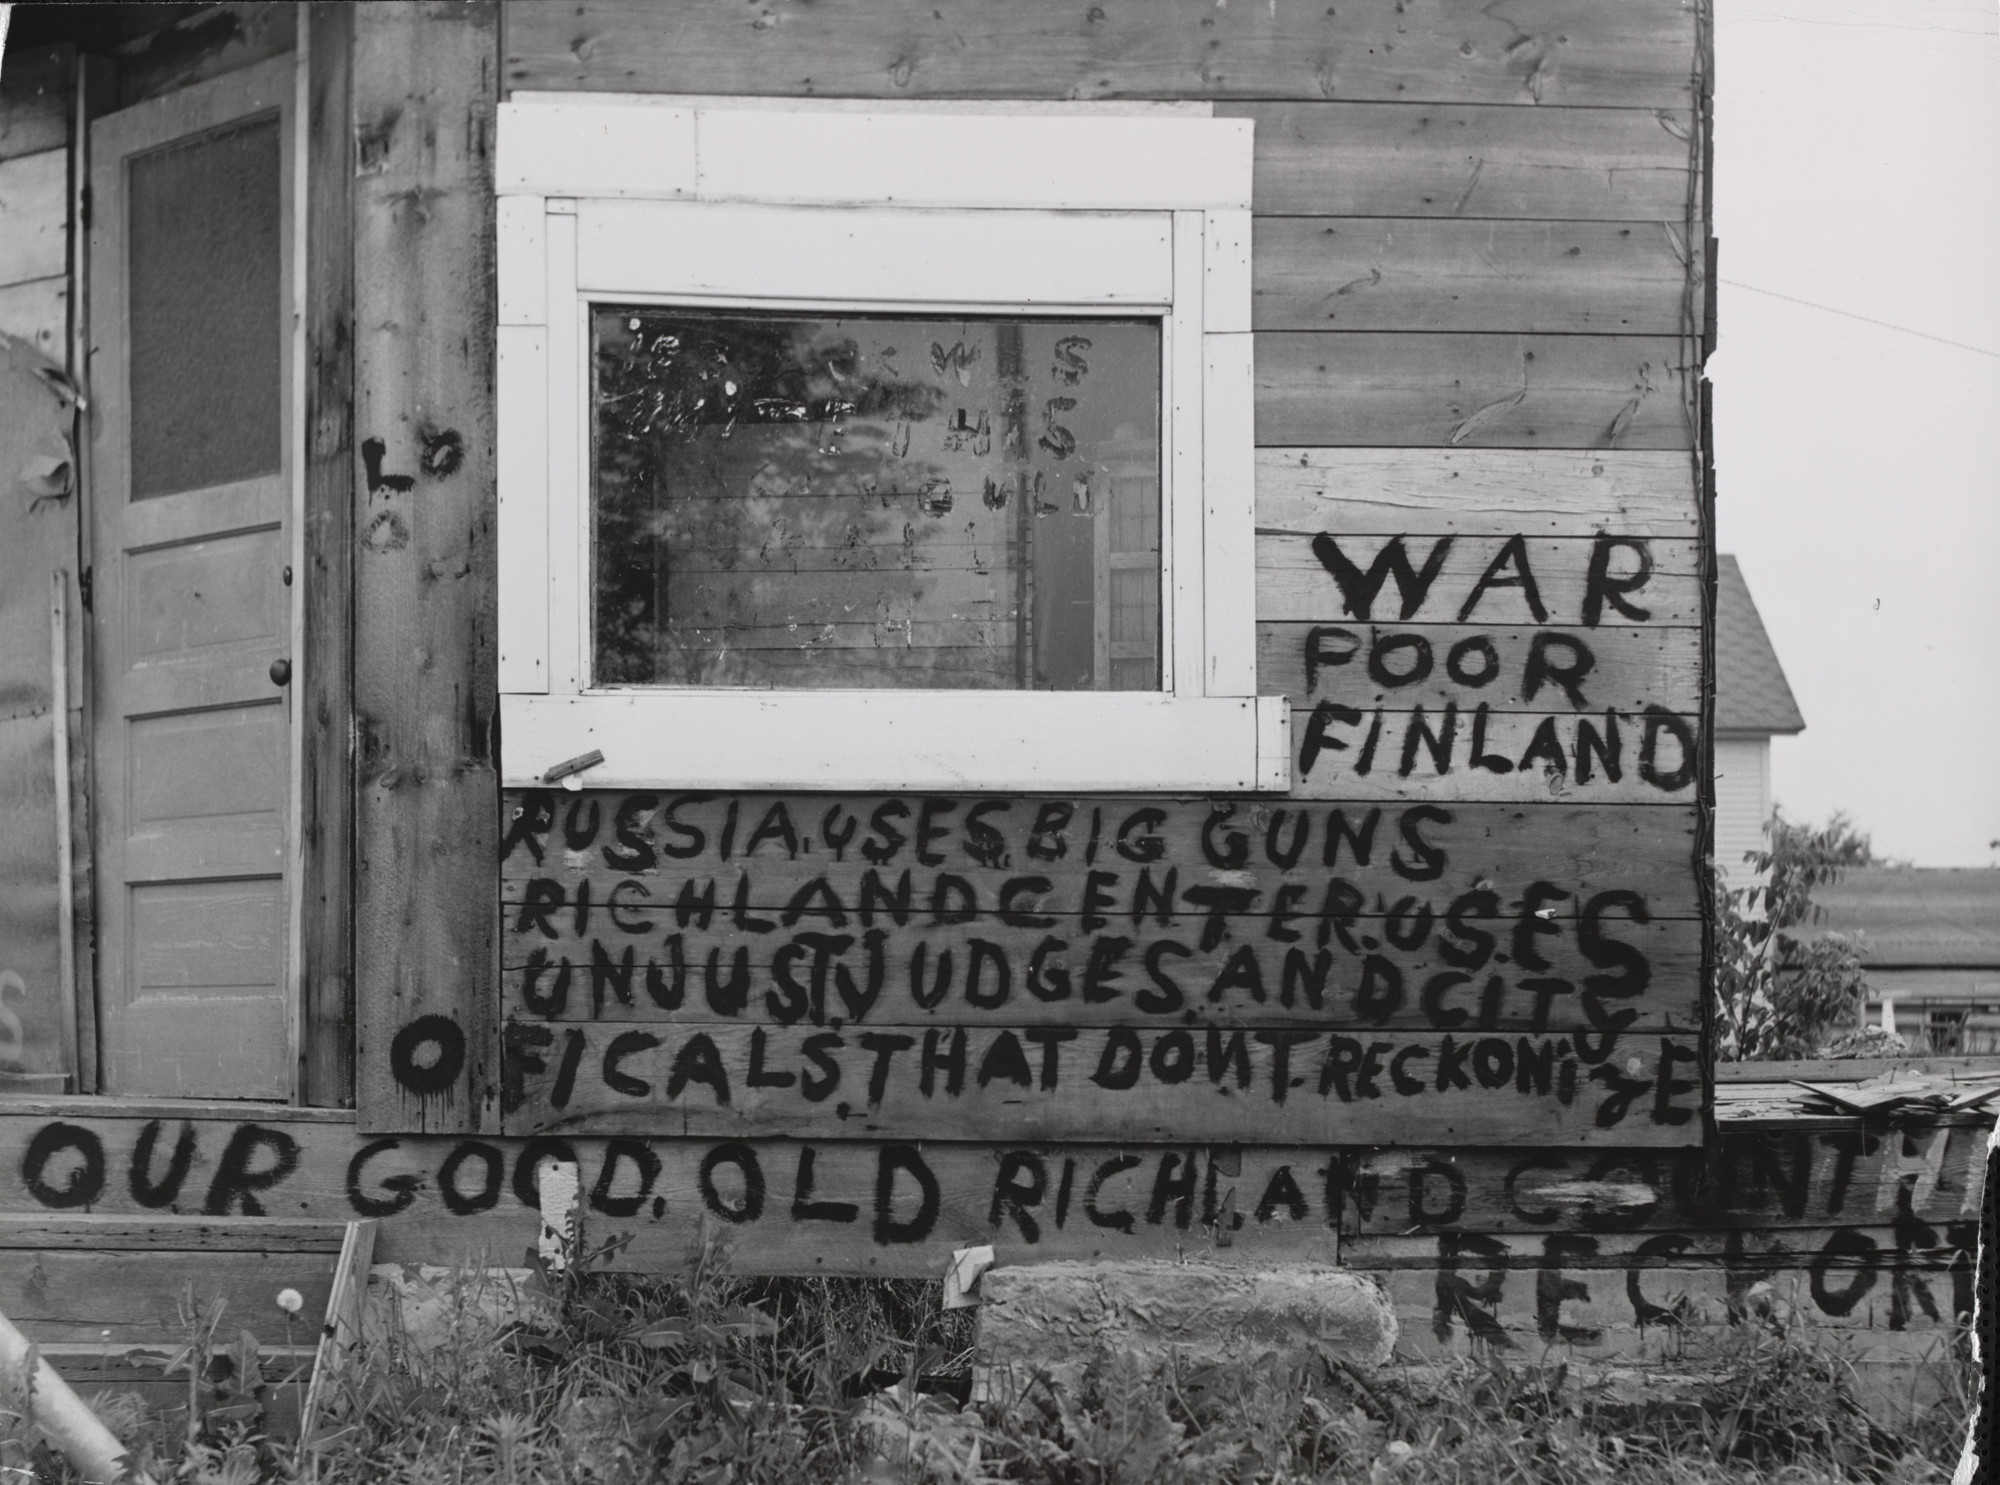 John Vachon. Sign on Building, Richland Center, Wisconsin. 1941